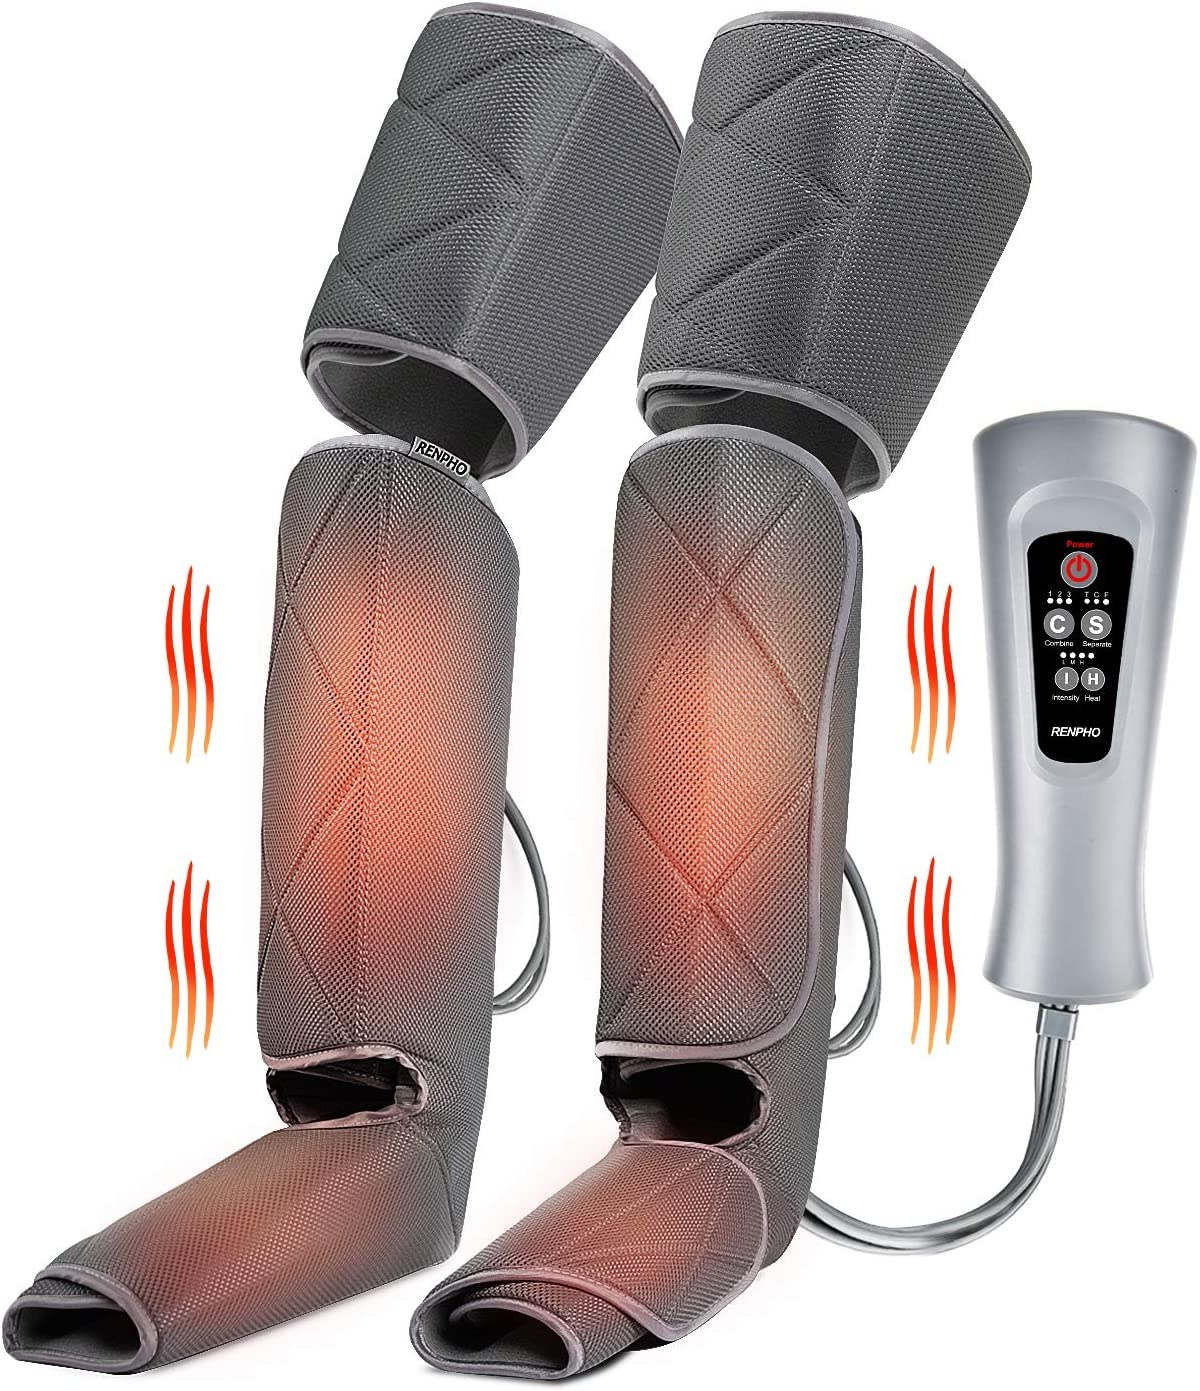 RENPHO Leg Massager for Circulation With Heat, Compression Calf Thigh Foot Massage, Adjustable Wraps Design for Most Size, With 3 Modes 3 Intensities, Gift for Mom Dad to Relax Leg Pain Muscle Fatigue